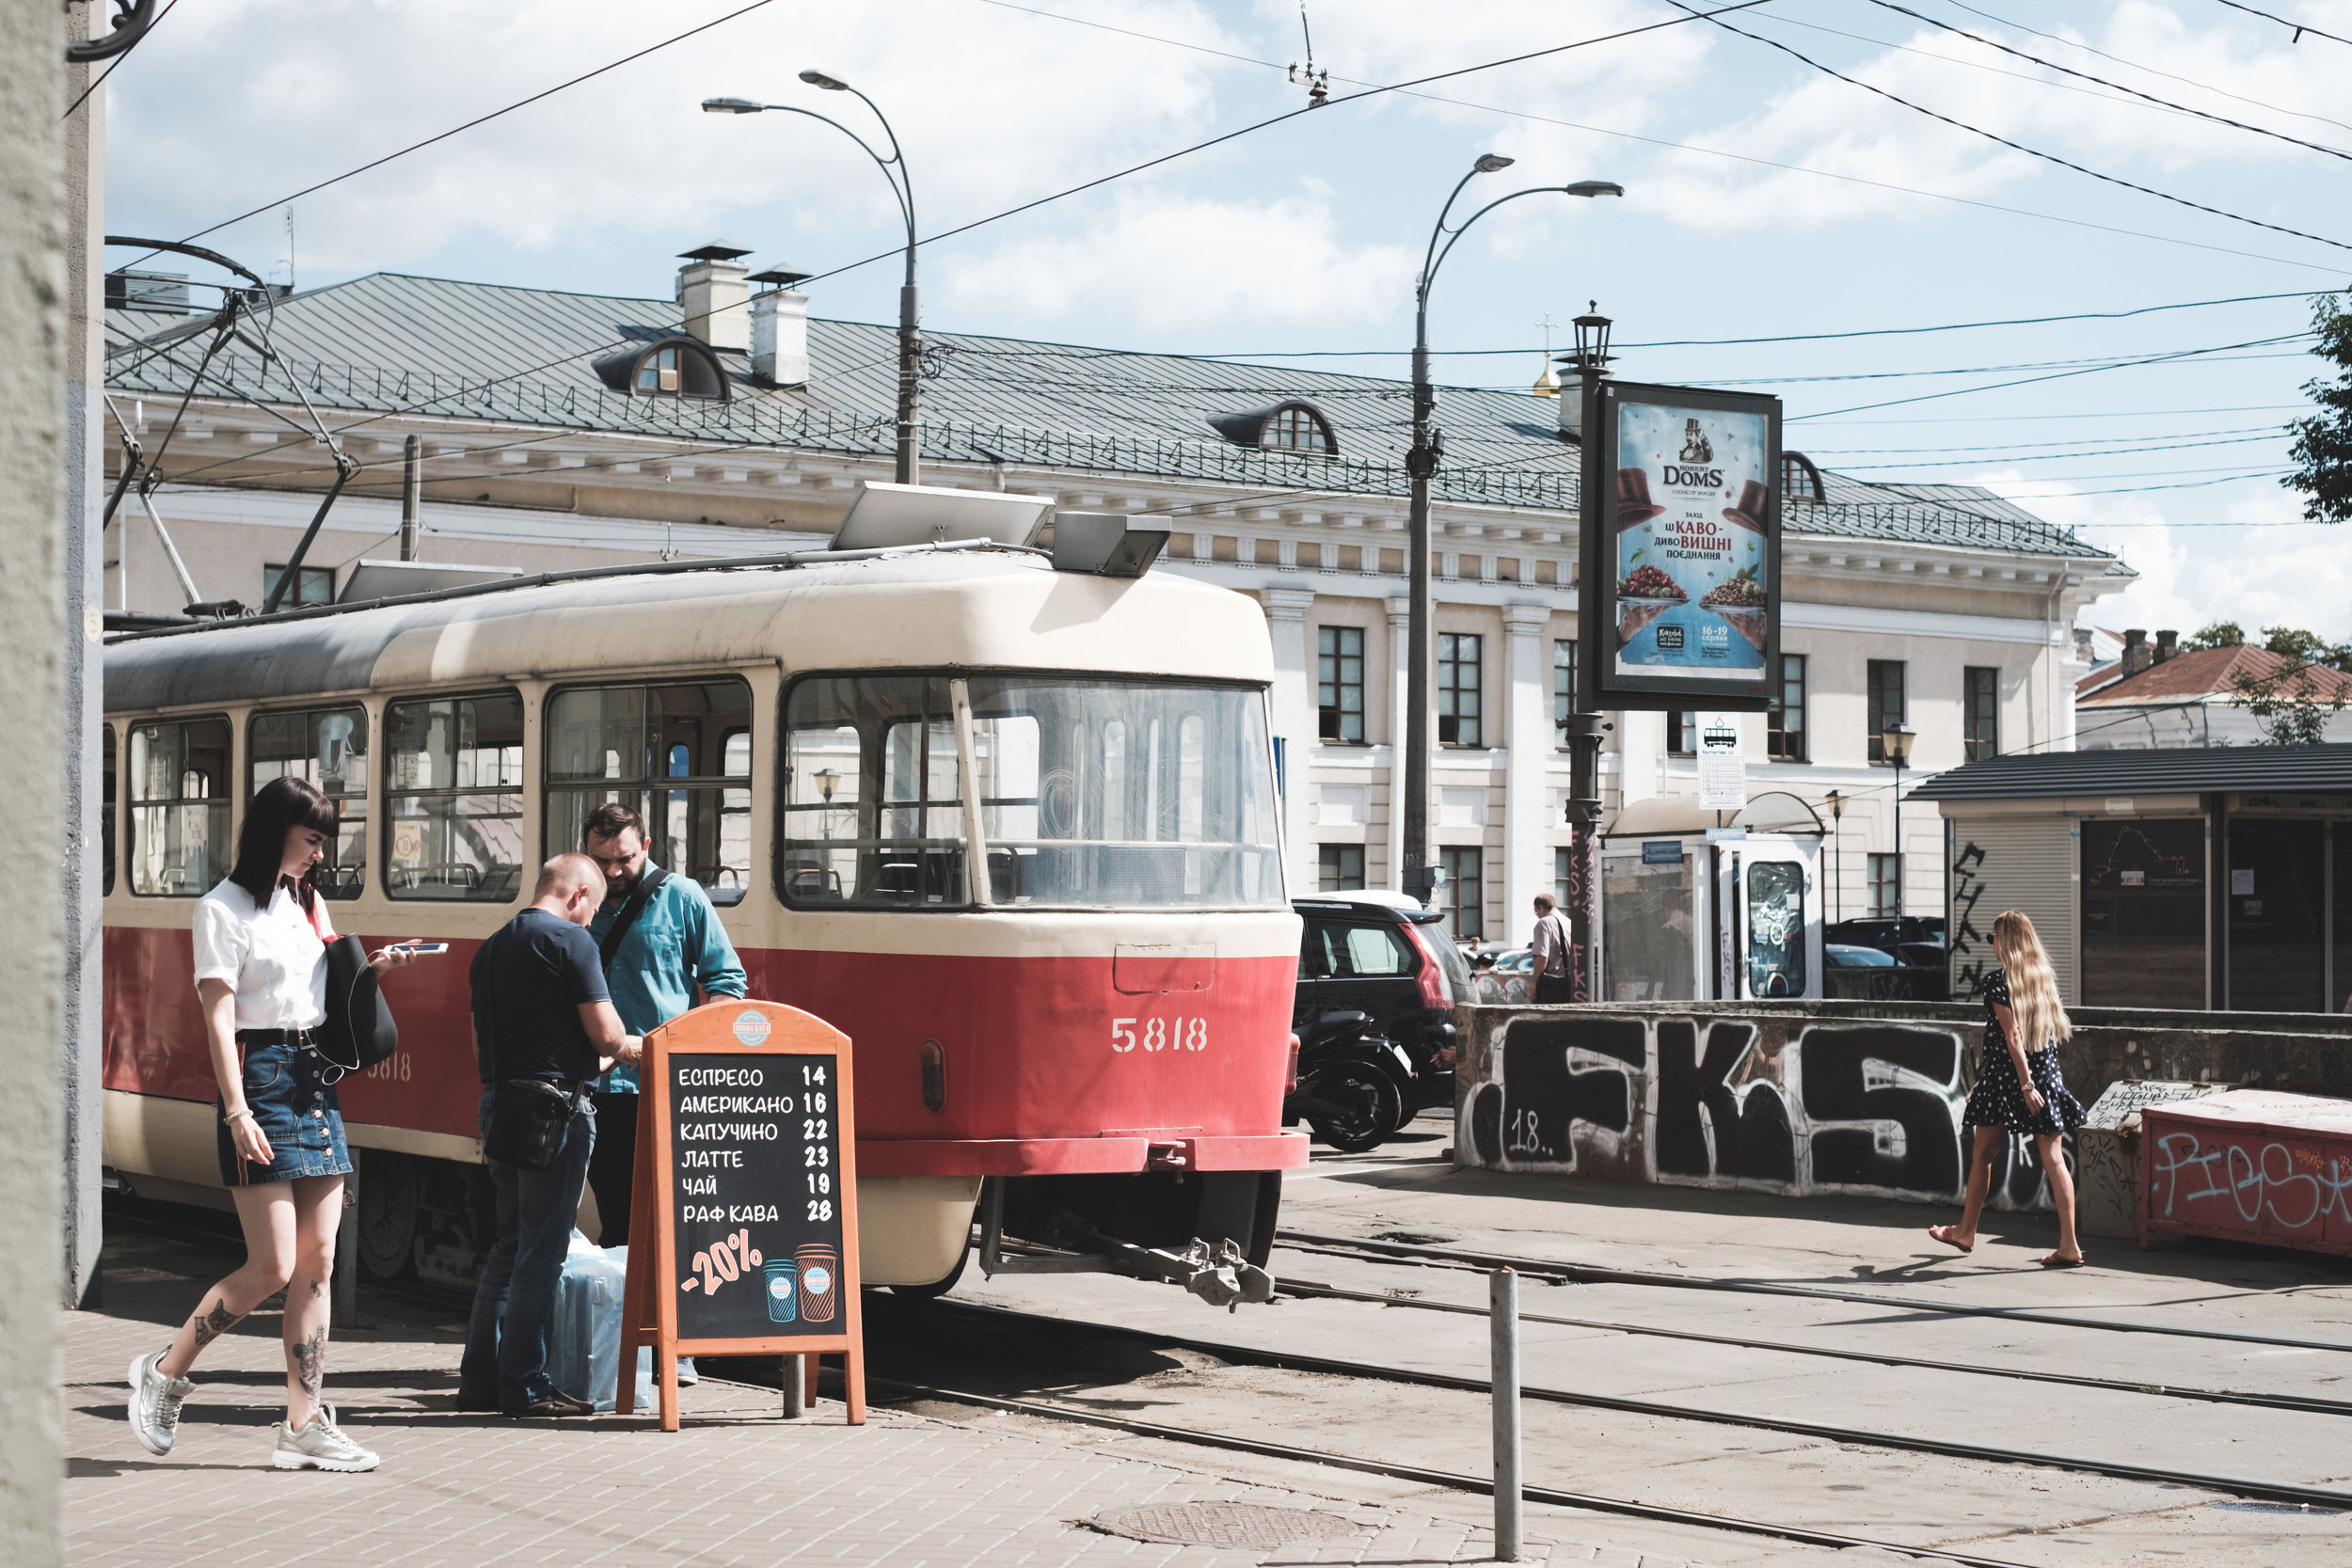 An old tram in Kiev Ukraine